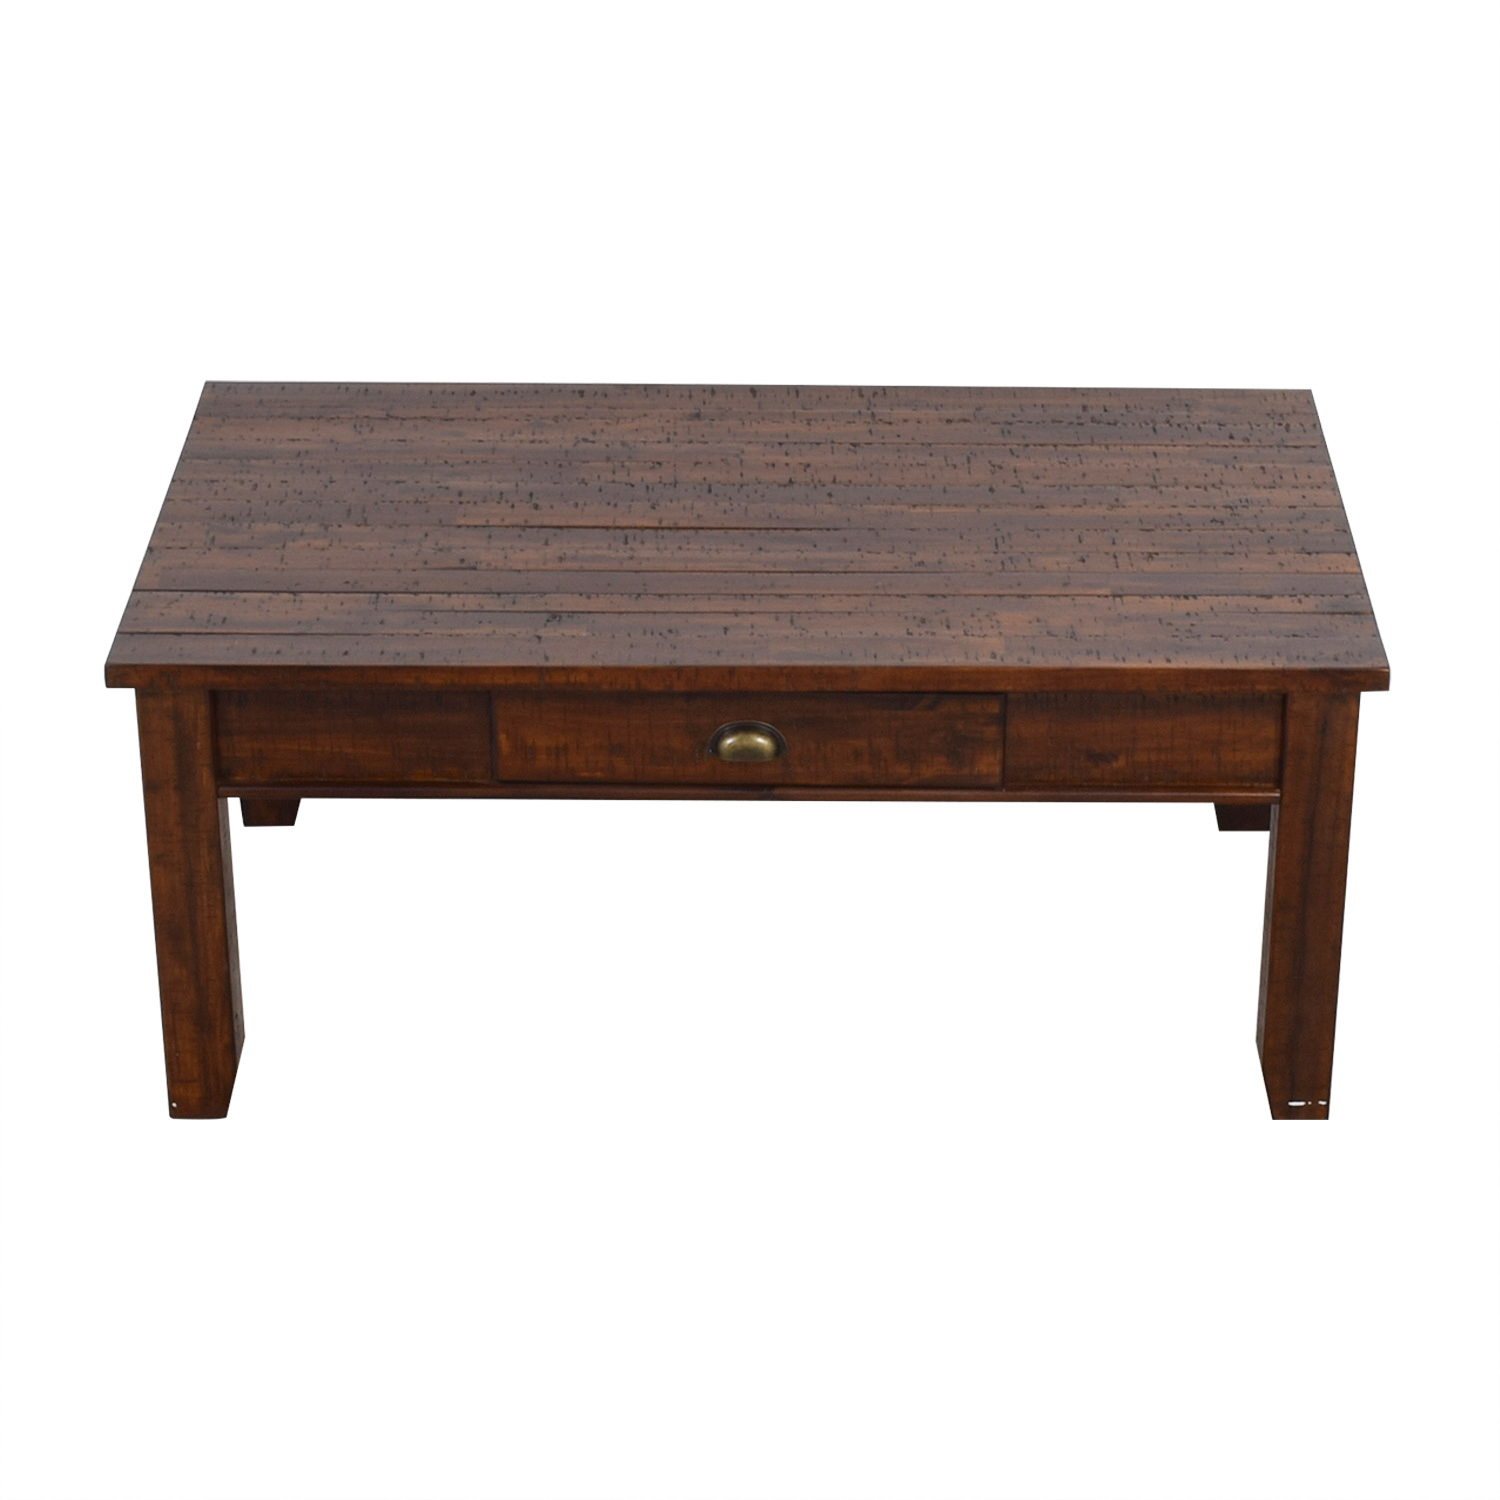 Raymour & Flanigan Raymour & Flanigan Urban Lodge Coffee Table dimensions